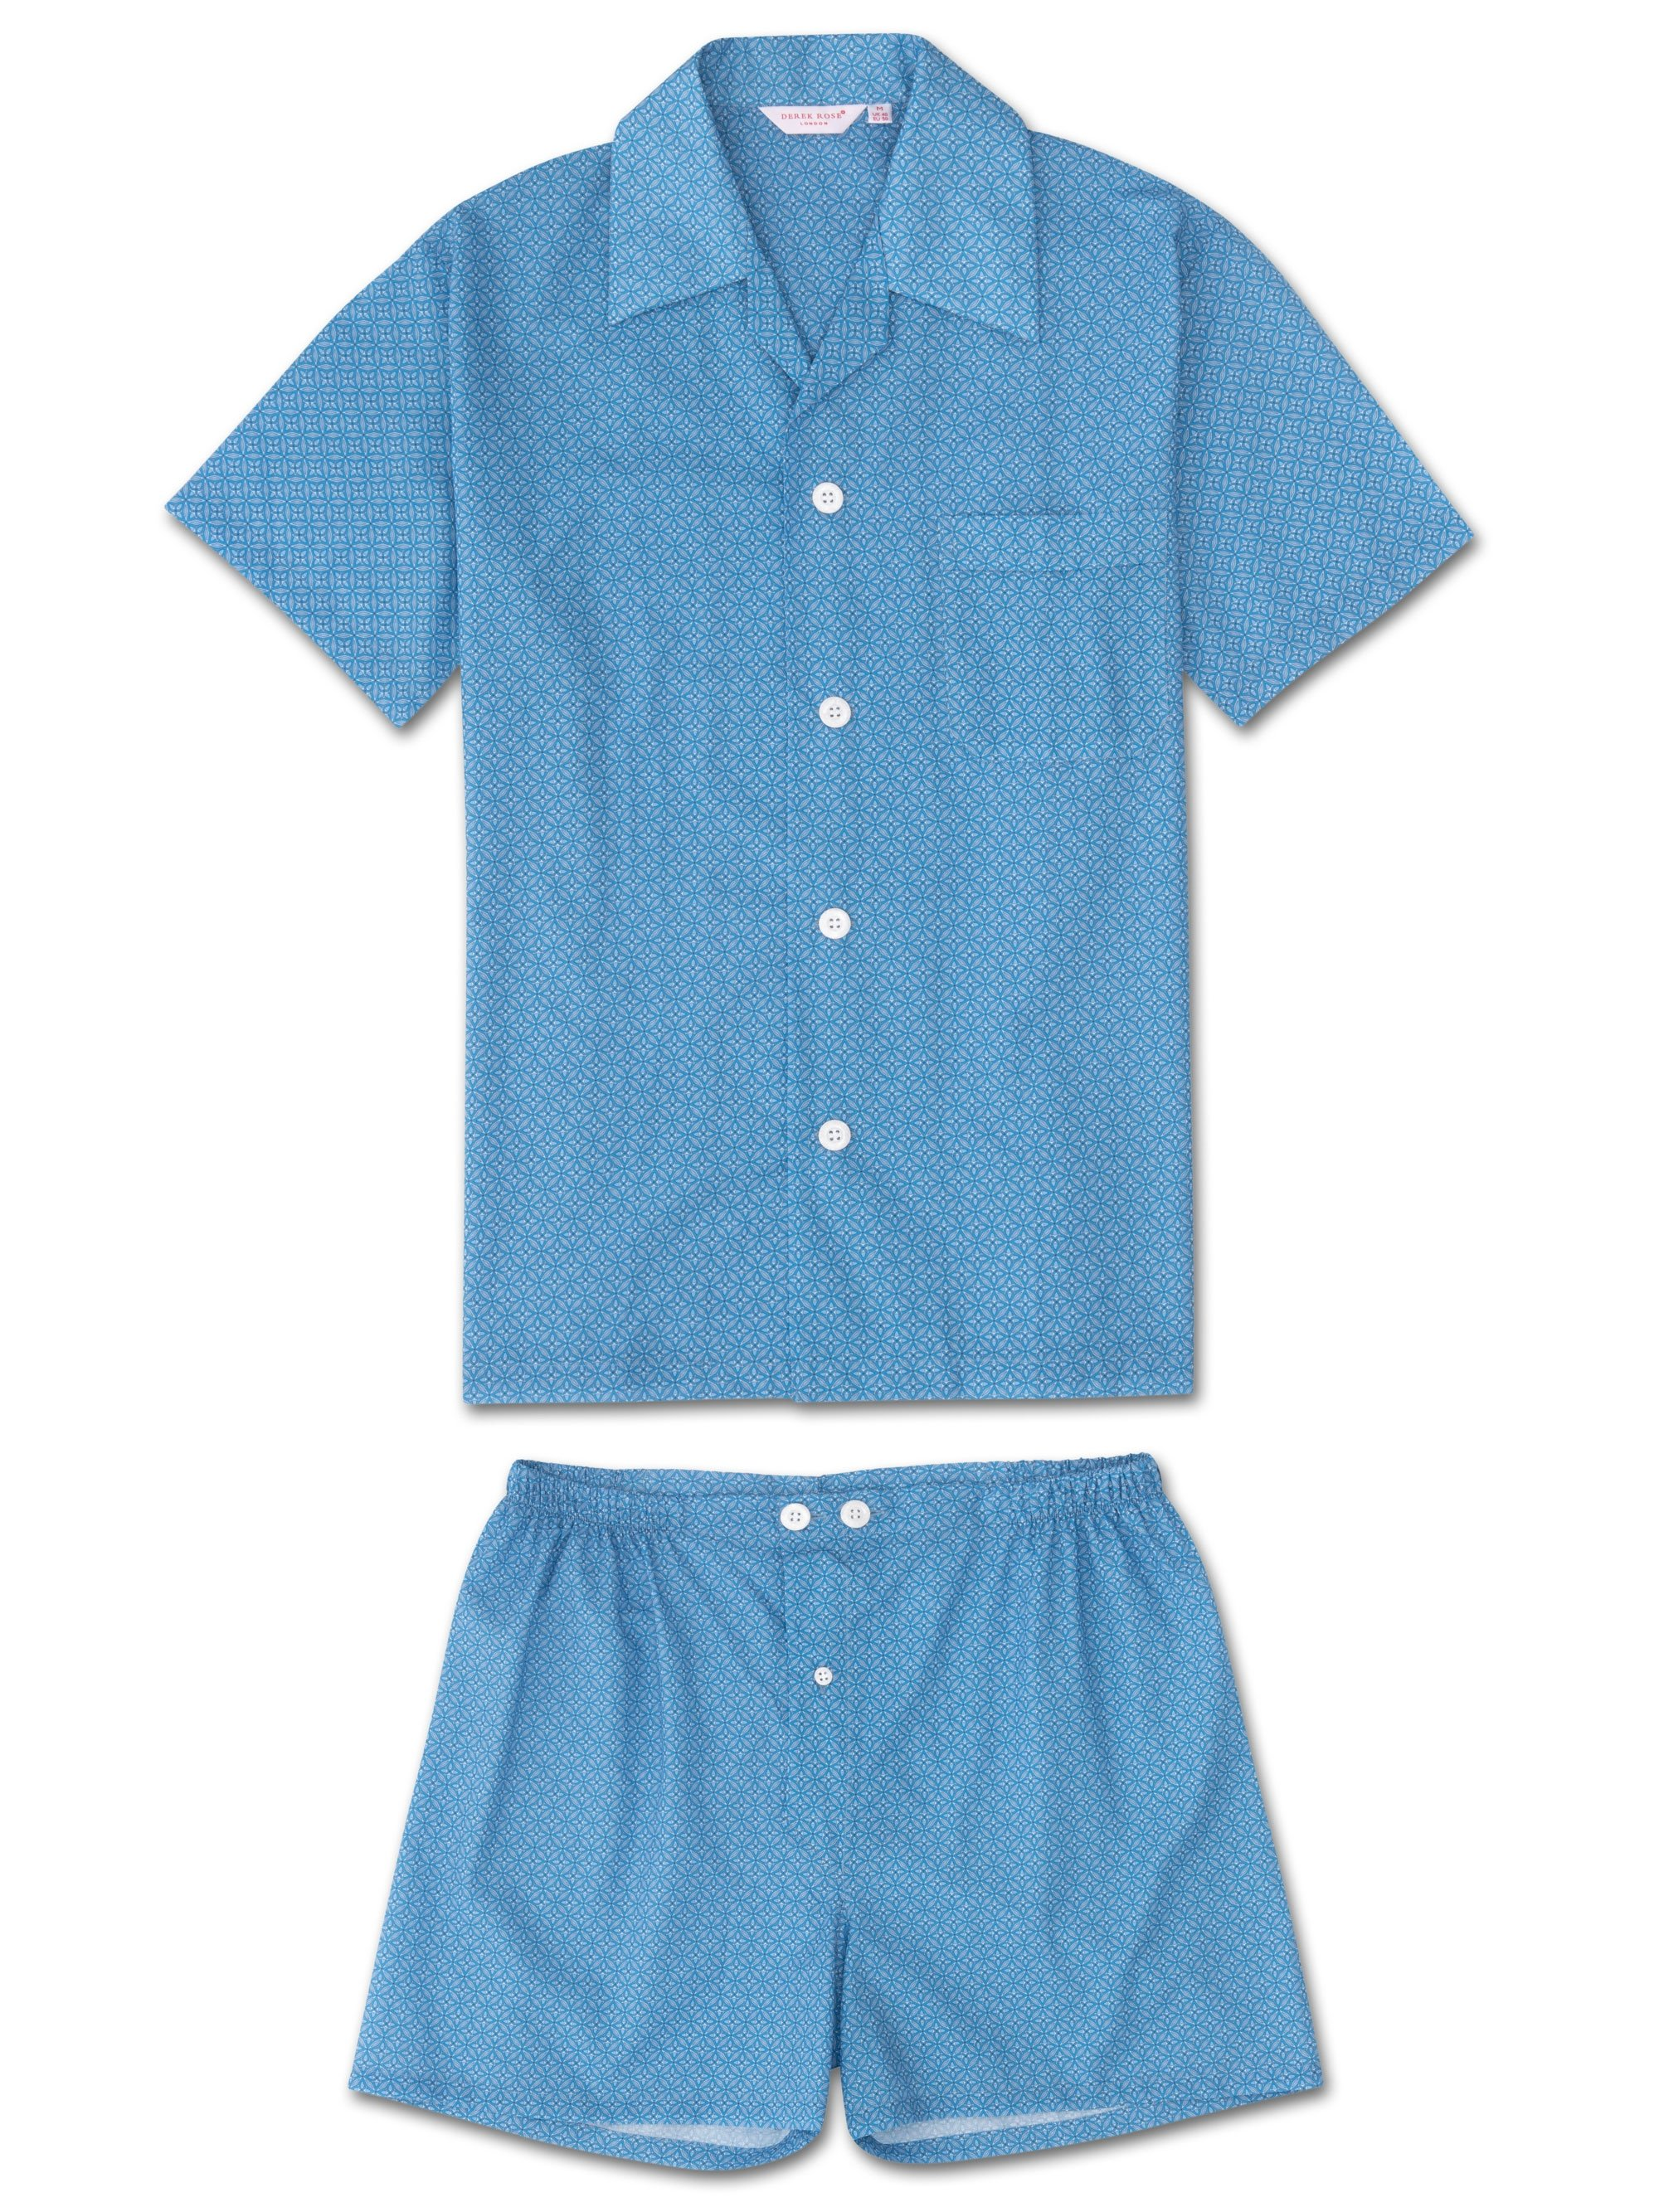 Men's Short Pyjamas Ledbury 21 Cotton Batiste Blue